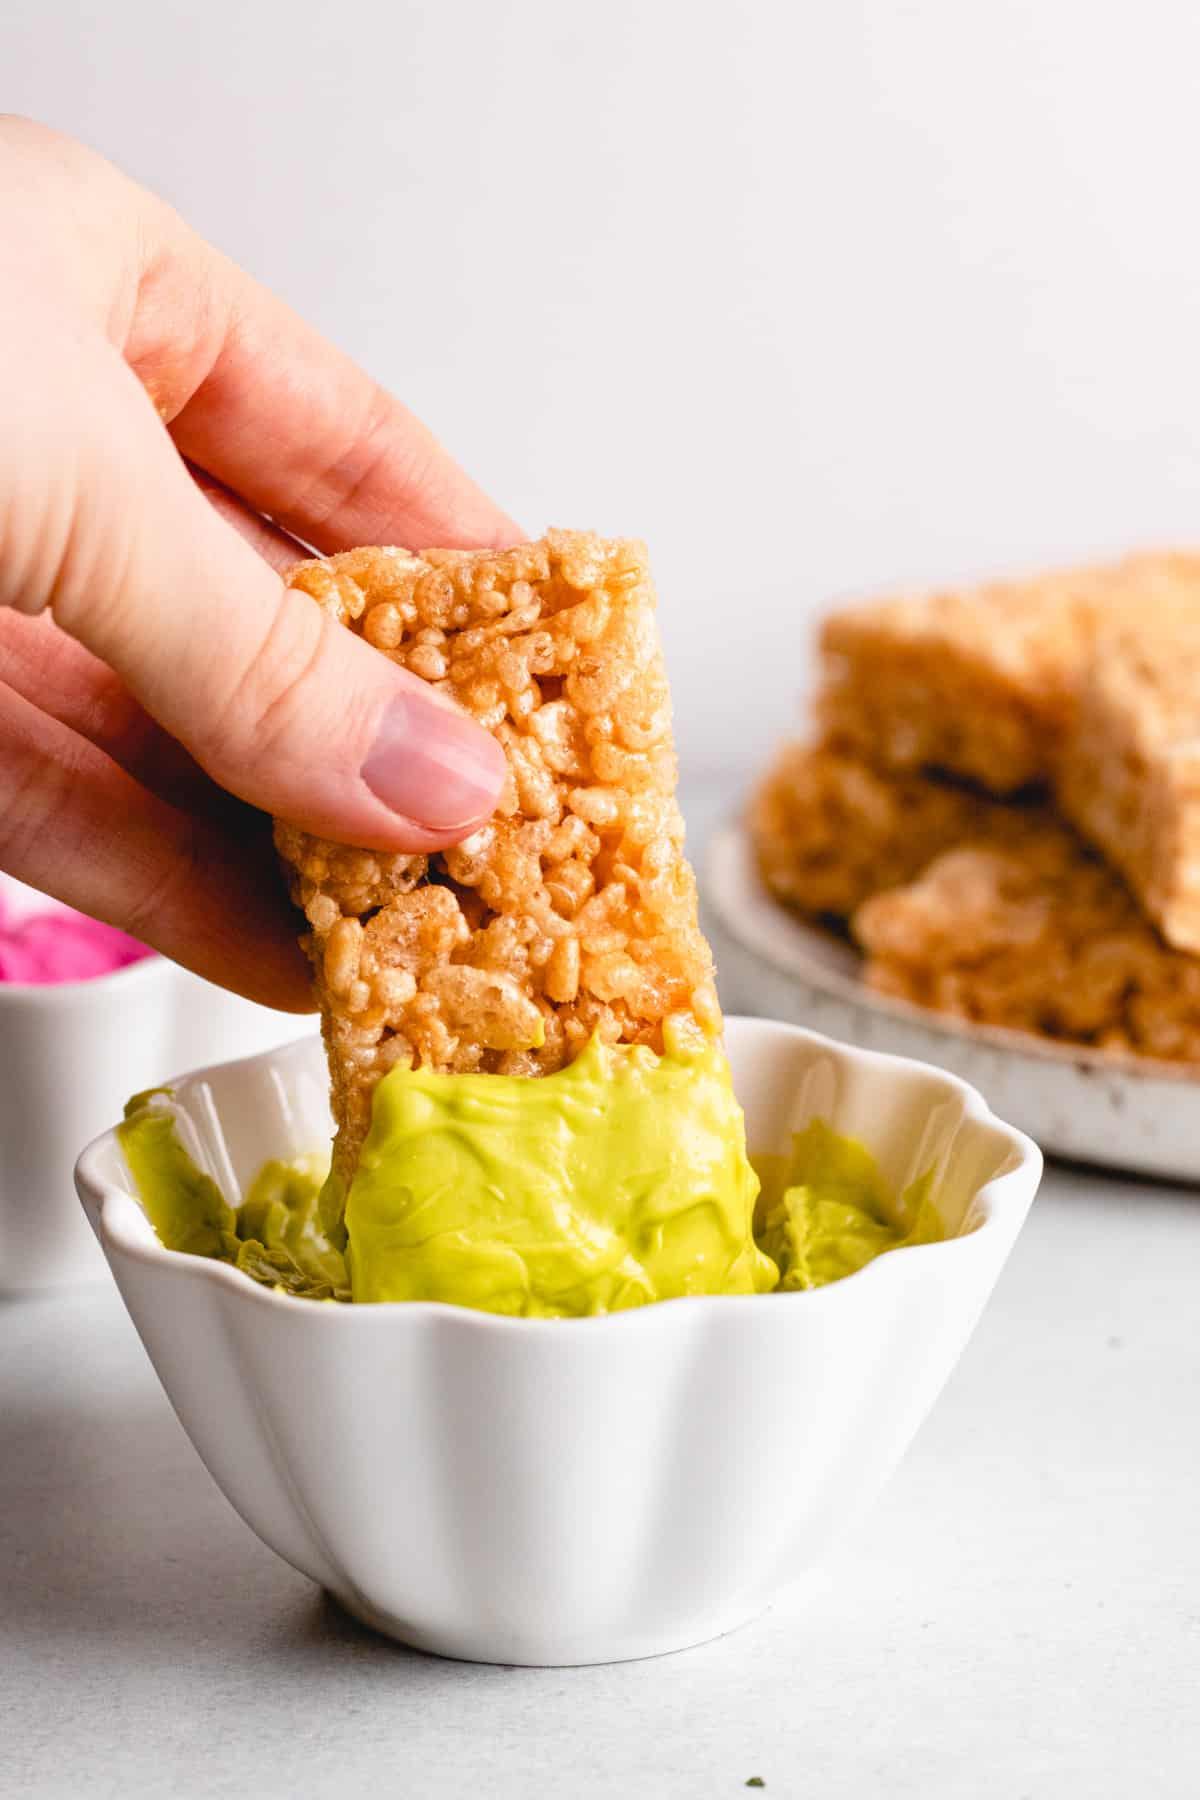 Dipping a rice krispie bar into green icing.